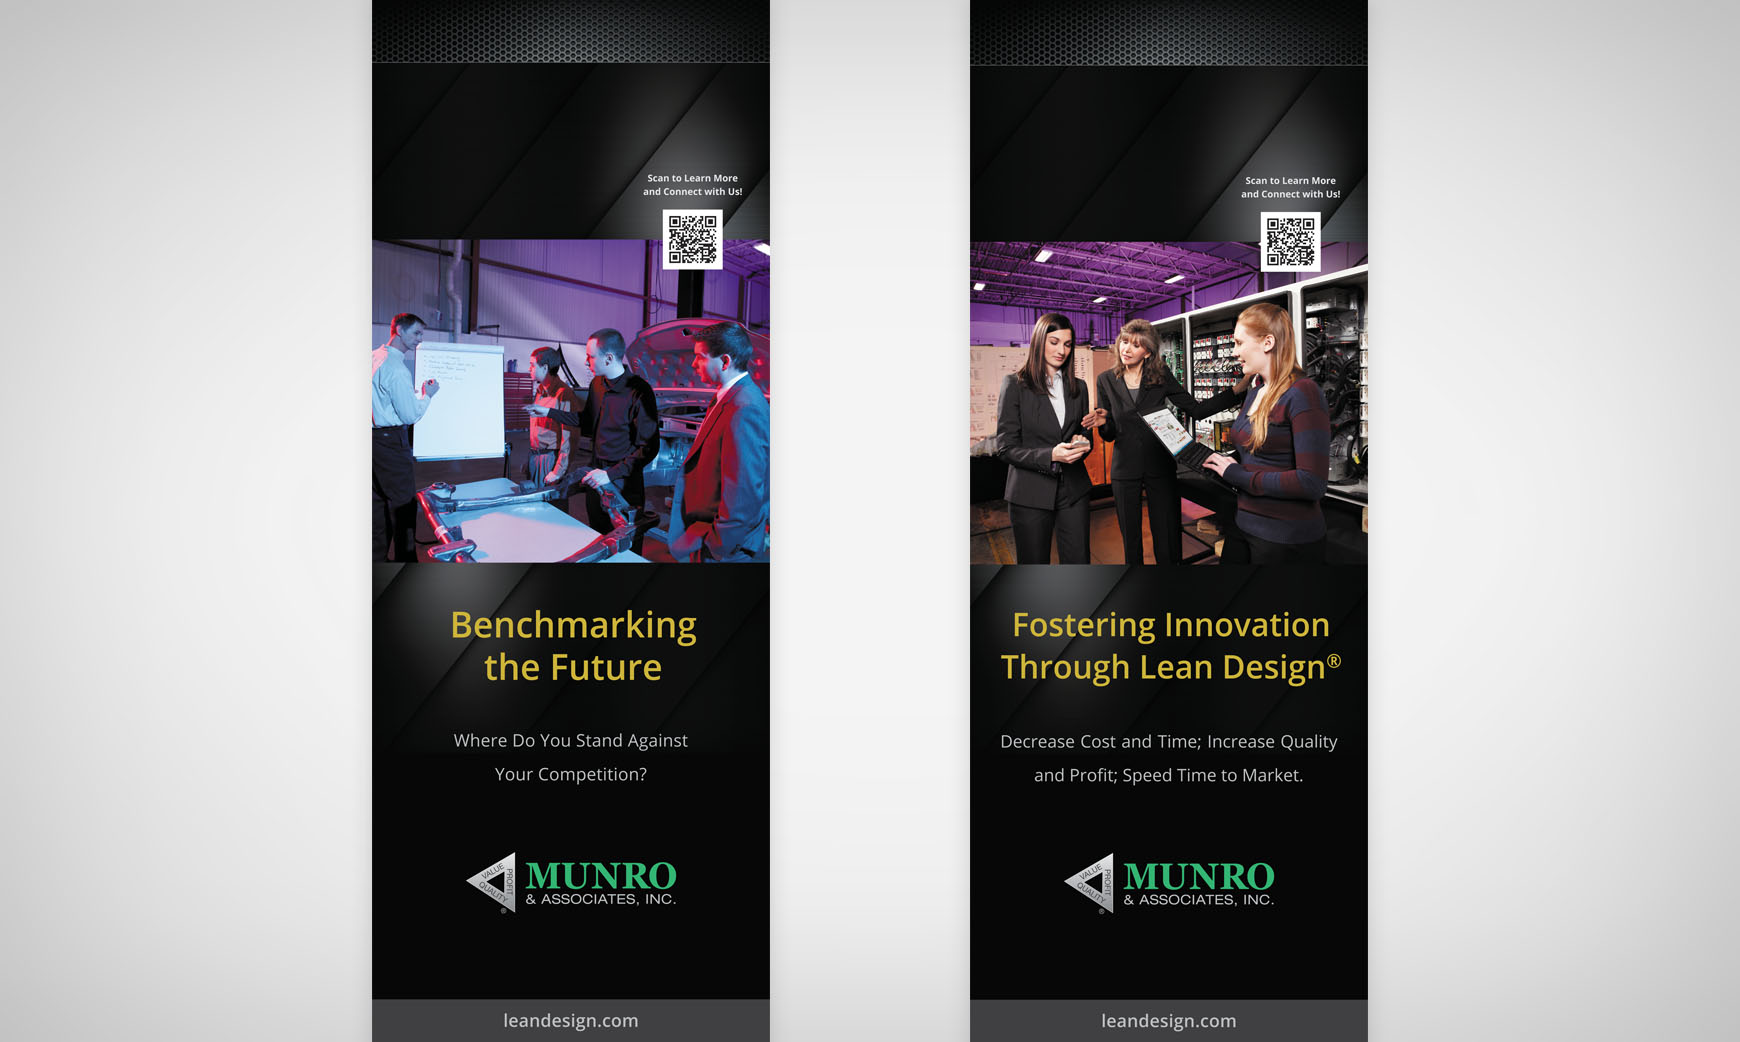 Munro & Associates retractable banners